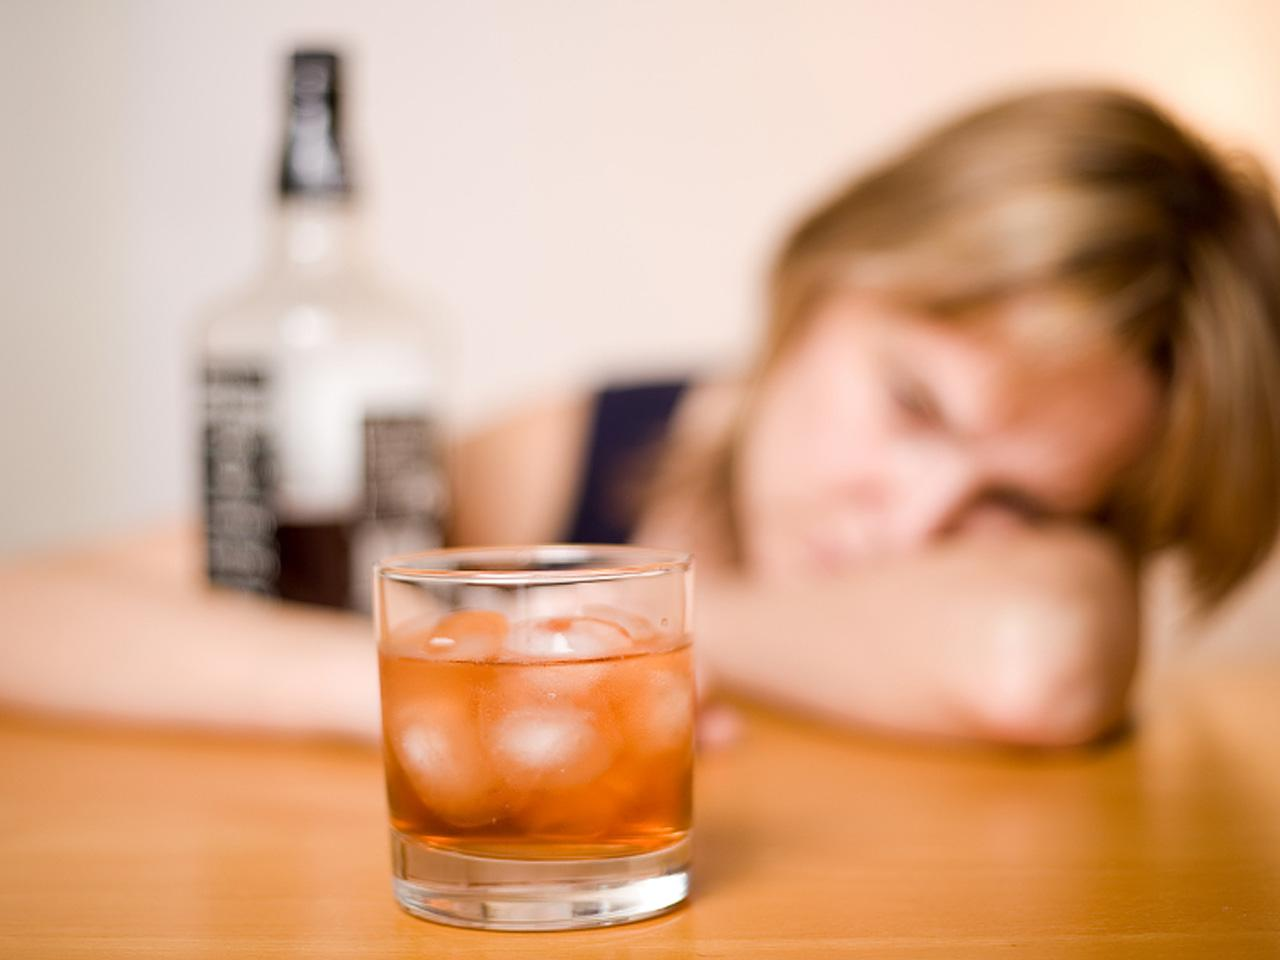 How much alcohol raises your risk for stroke?